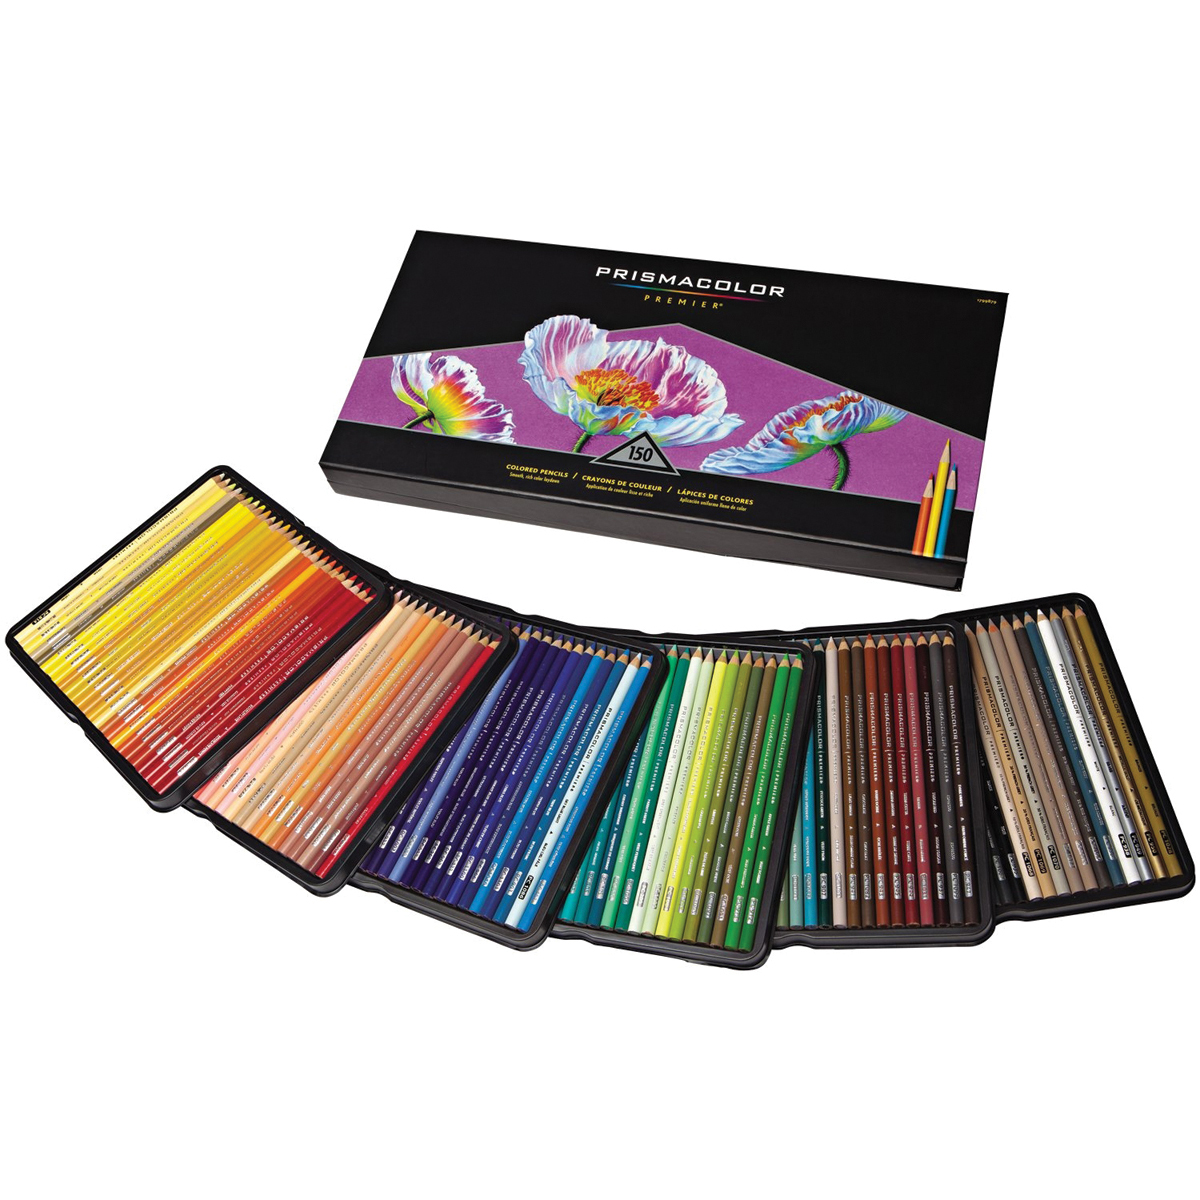 Prismacolor Premier Colored Art Pencil Set, 150 Count